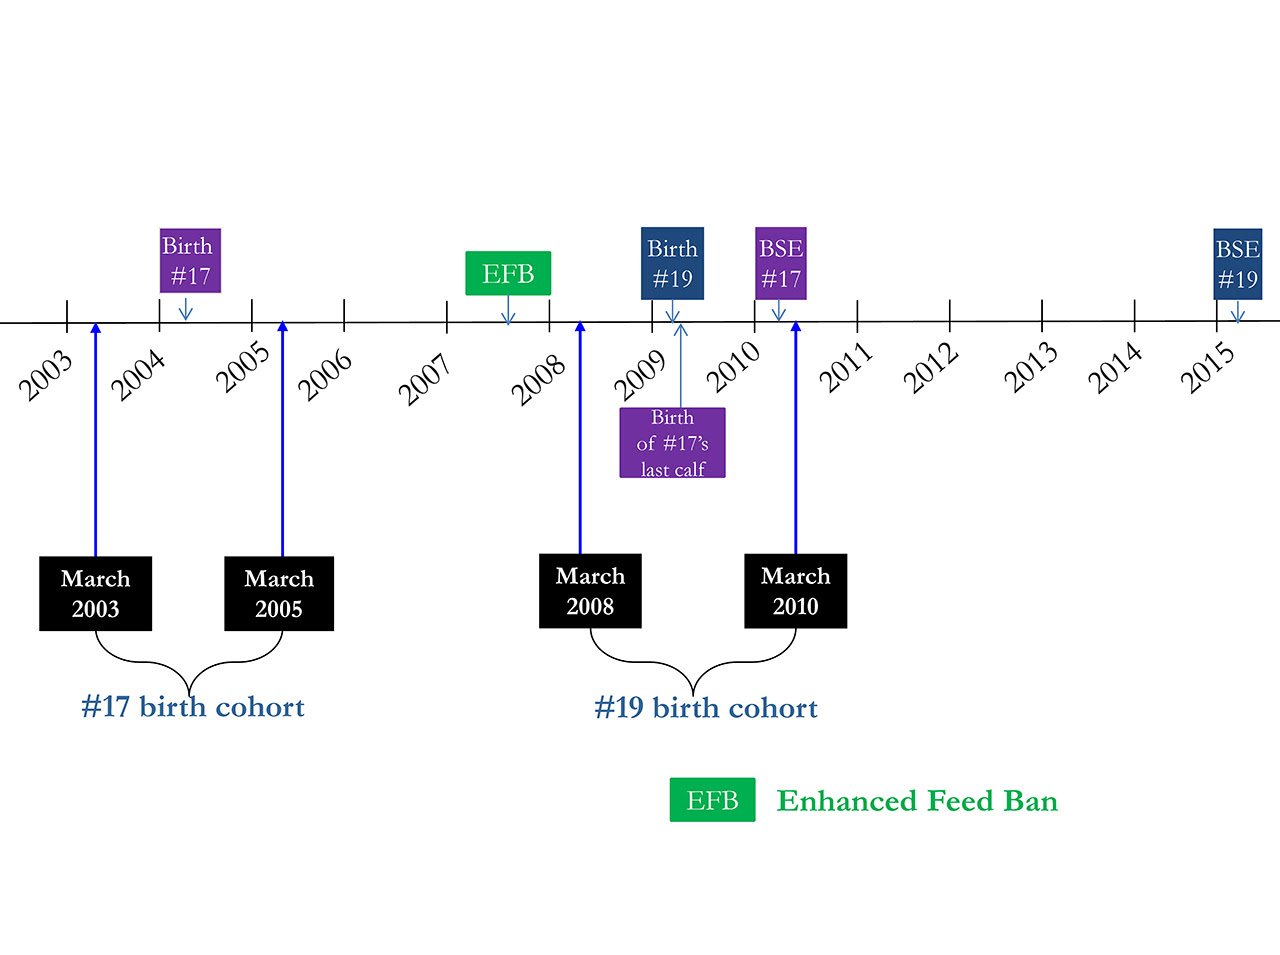 Figure 2. Timeline (birth and death) of BSE Cases #17 and #19 Born on the Same Farm. Description follows.